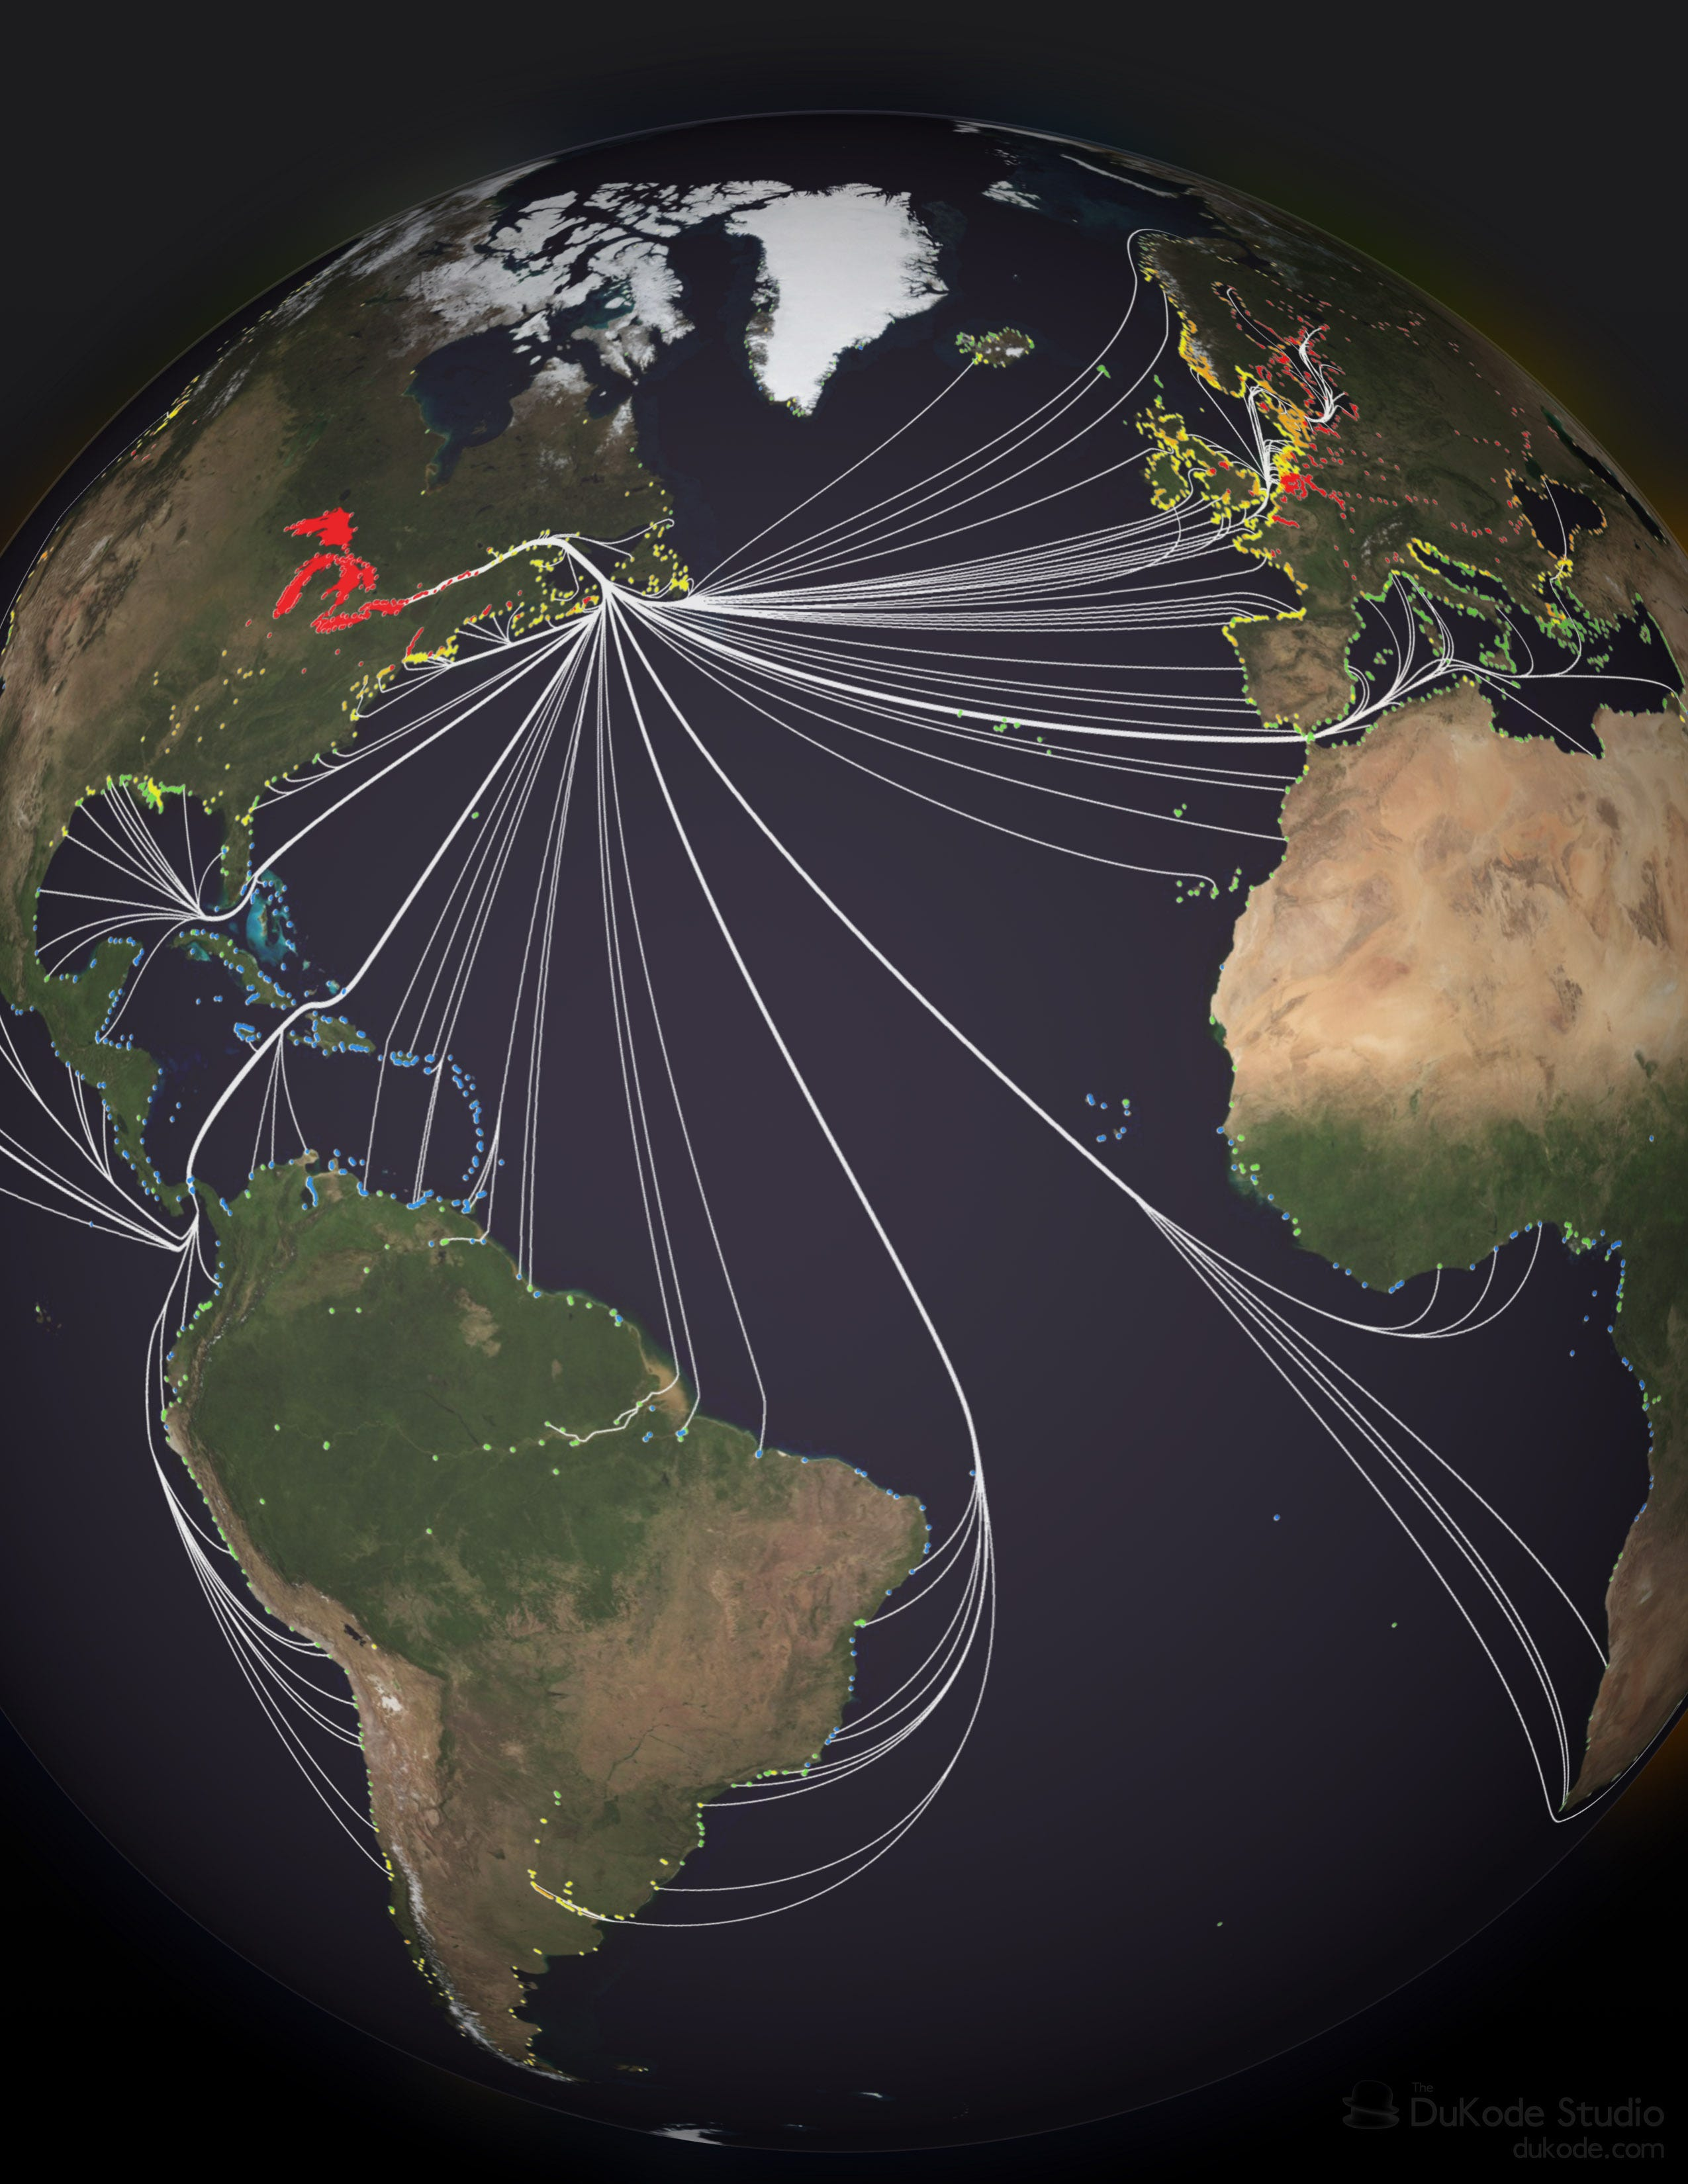 This image shows departure ports and routes for ships that visited the Great Lakes during a 12-month period from 2005 to 2006. Each global port is marked by a dot. Ports marked in red show the highest risk ports to produce invasive species due to their environmental similarities to the Great Lakes. Less similar ports are marked in other colors. Data compiled by Reuben Keller at Loyola University Chicago.